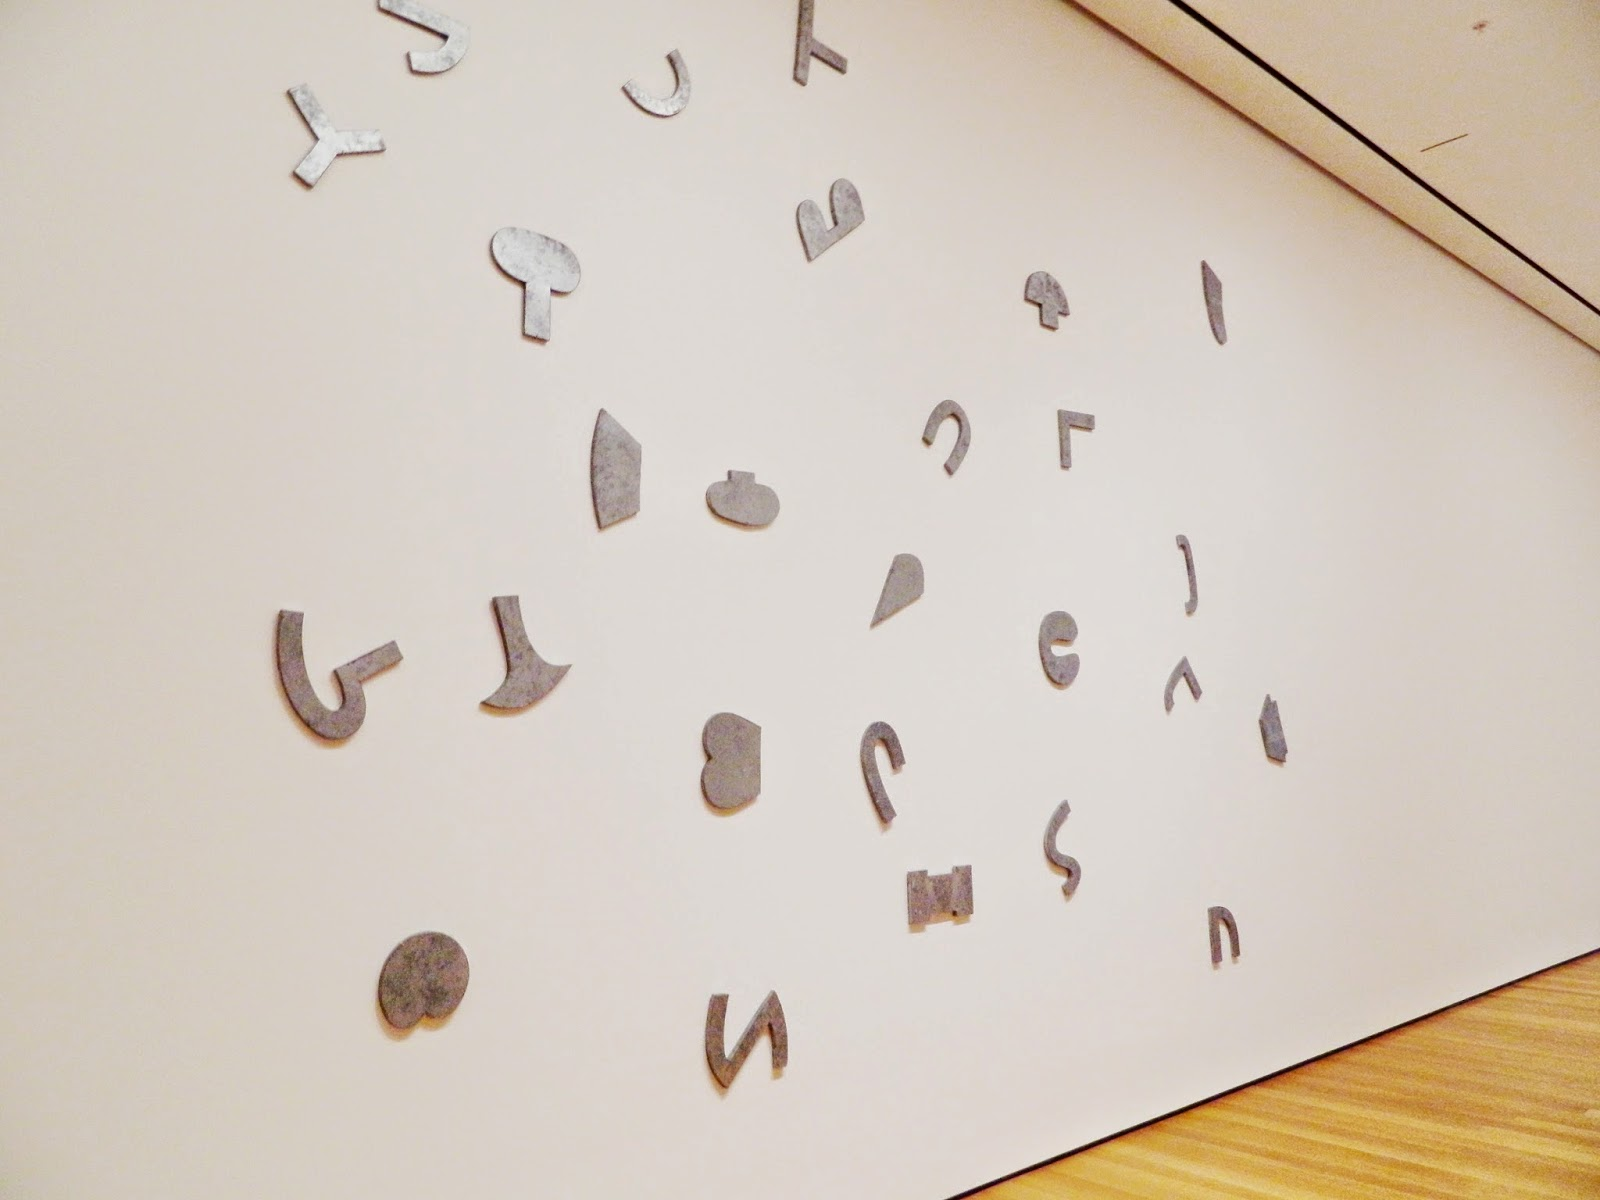 Richard Tuttle, Letters (The Twenty-Six Series) silver letters forms wall shapes